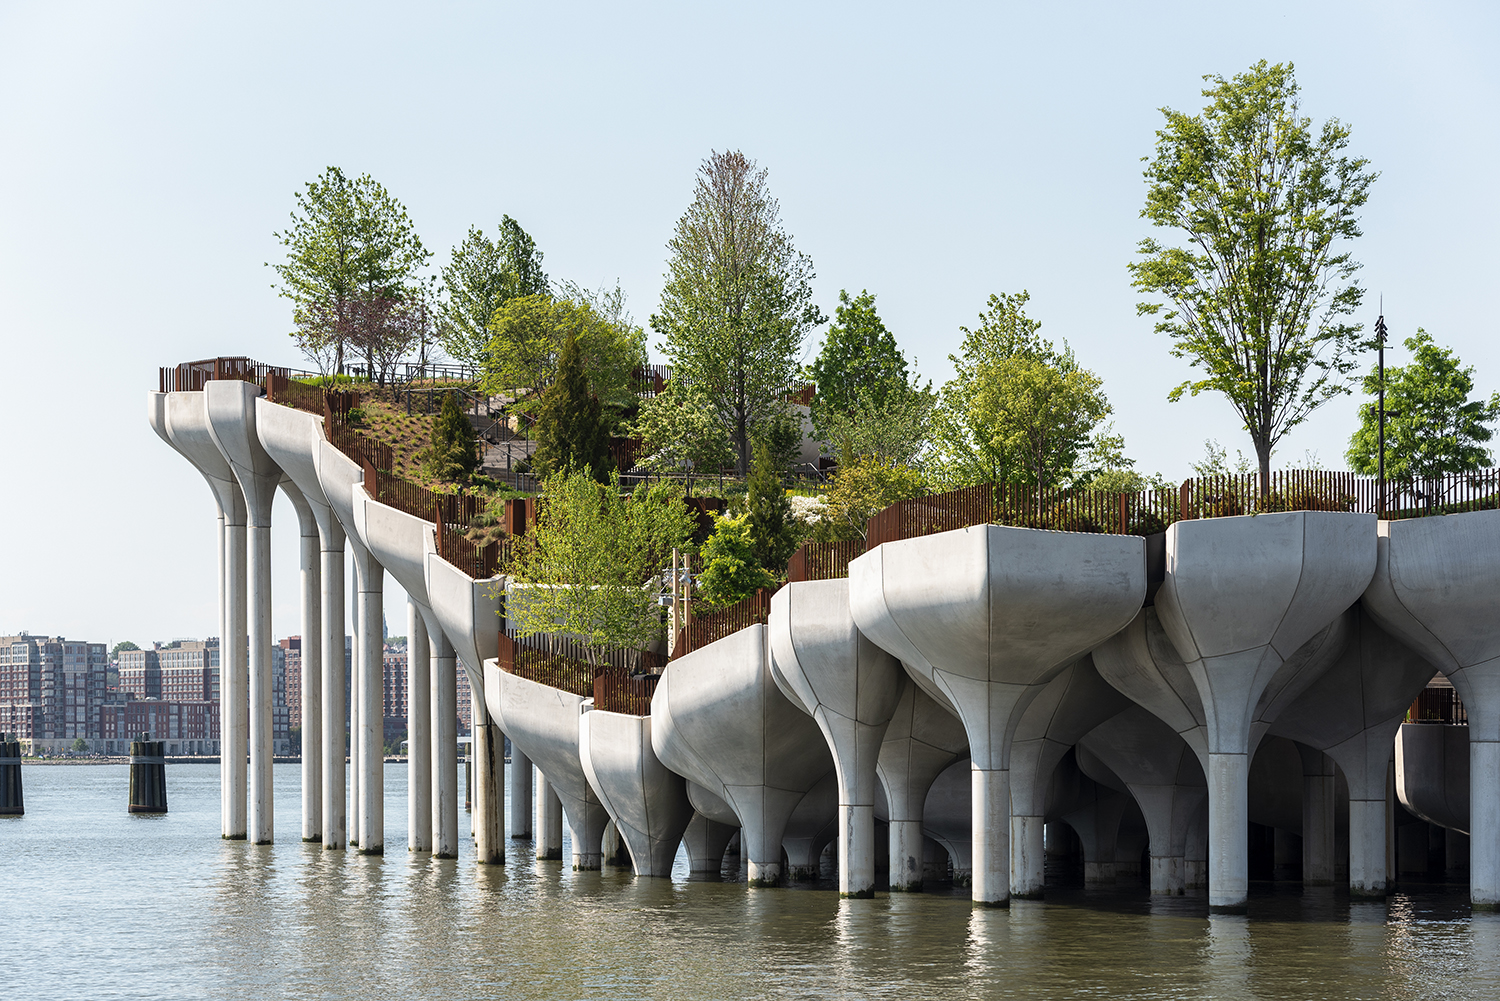 Image of the multiple Little Island pier stakes in the Hudson River